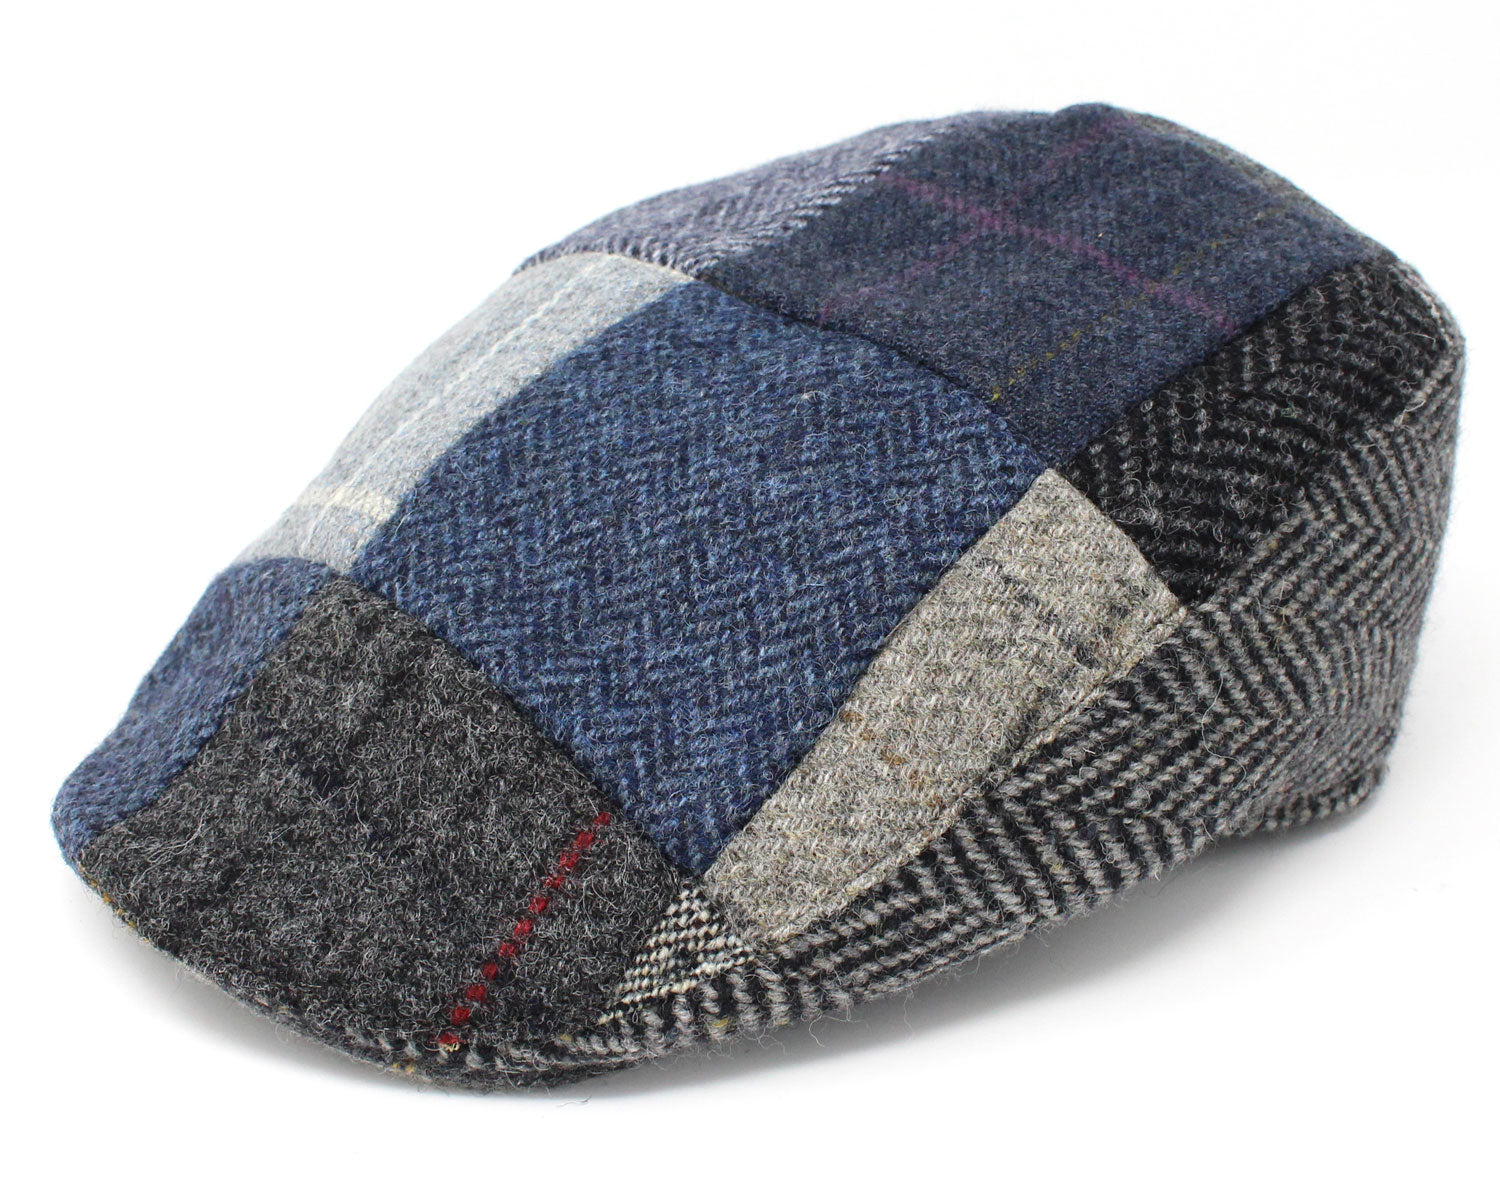 f0cc40ad44af Hanna Patchwork Touring Cap   Blue and Grey Patchwork – Hollands Country  Clothing